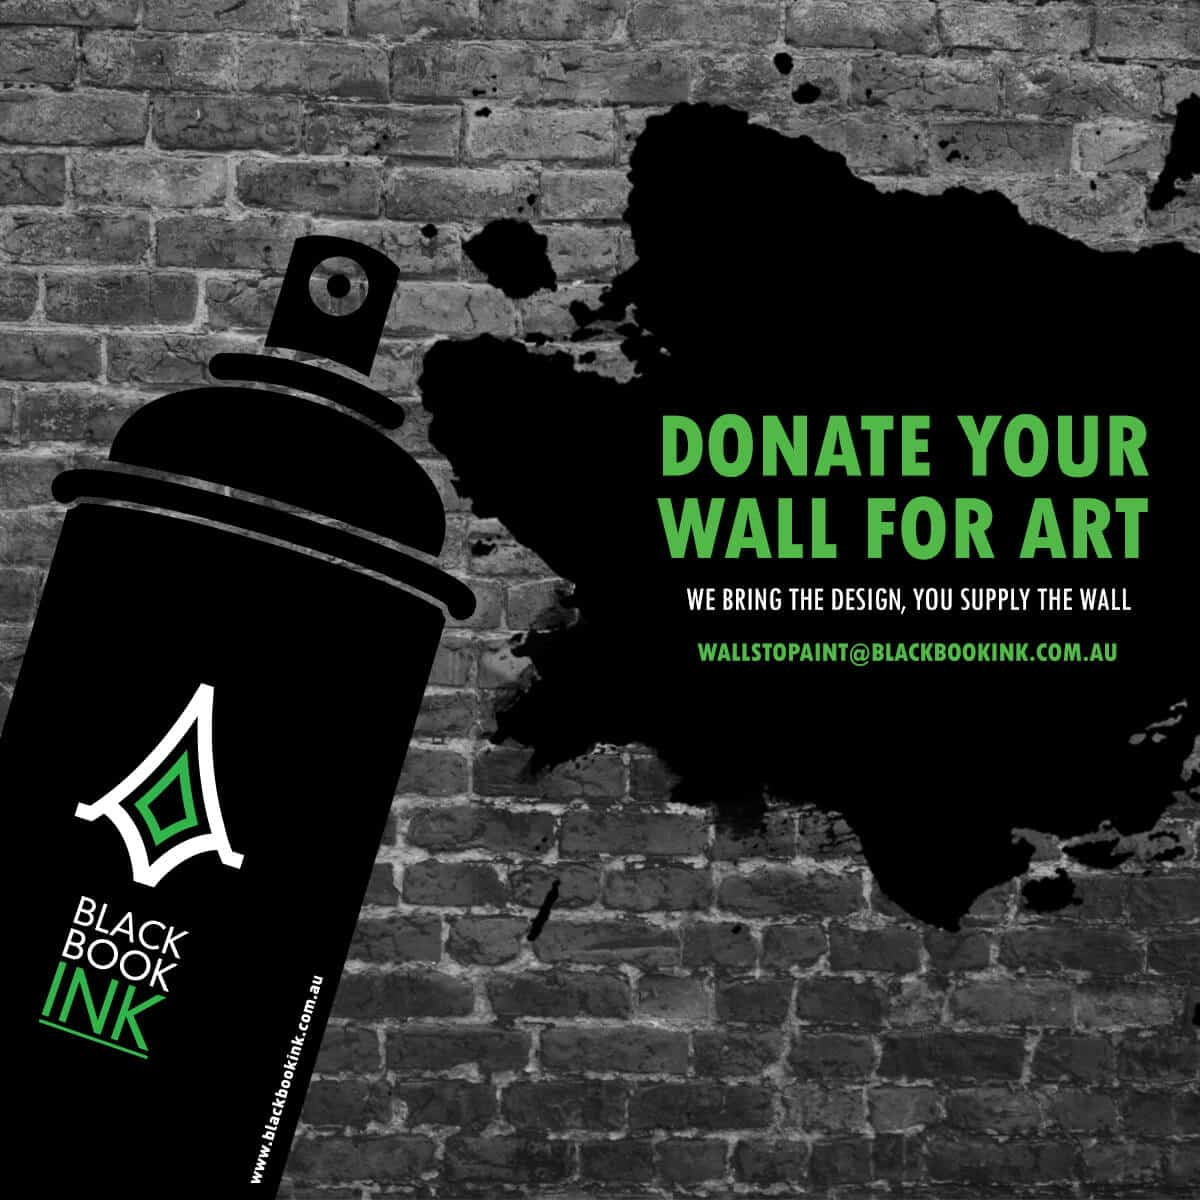 Donate your Wall for Art